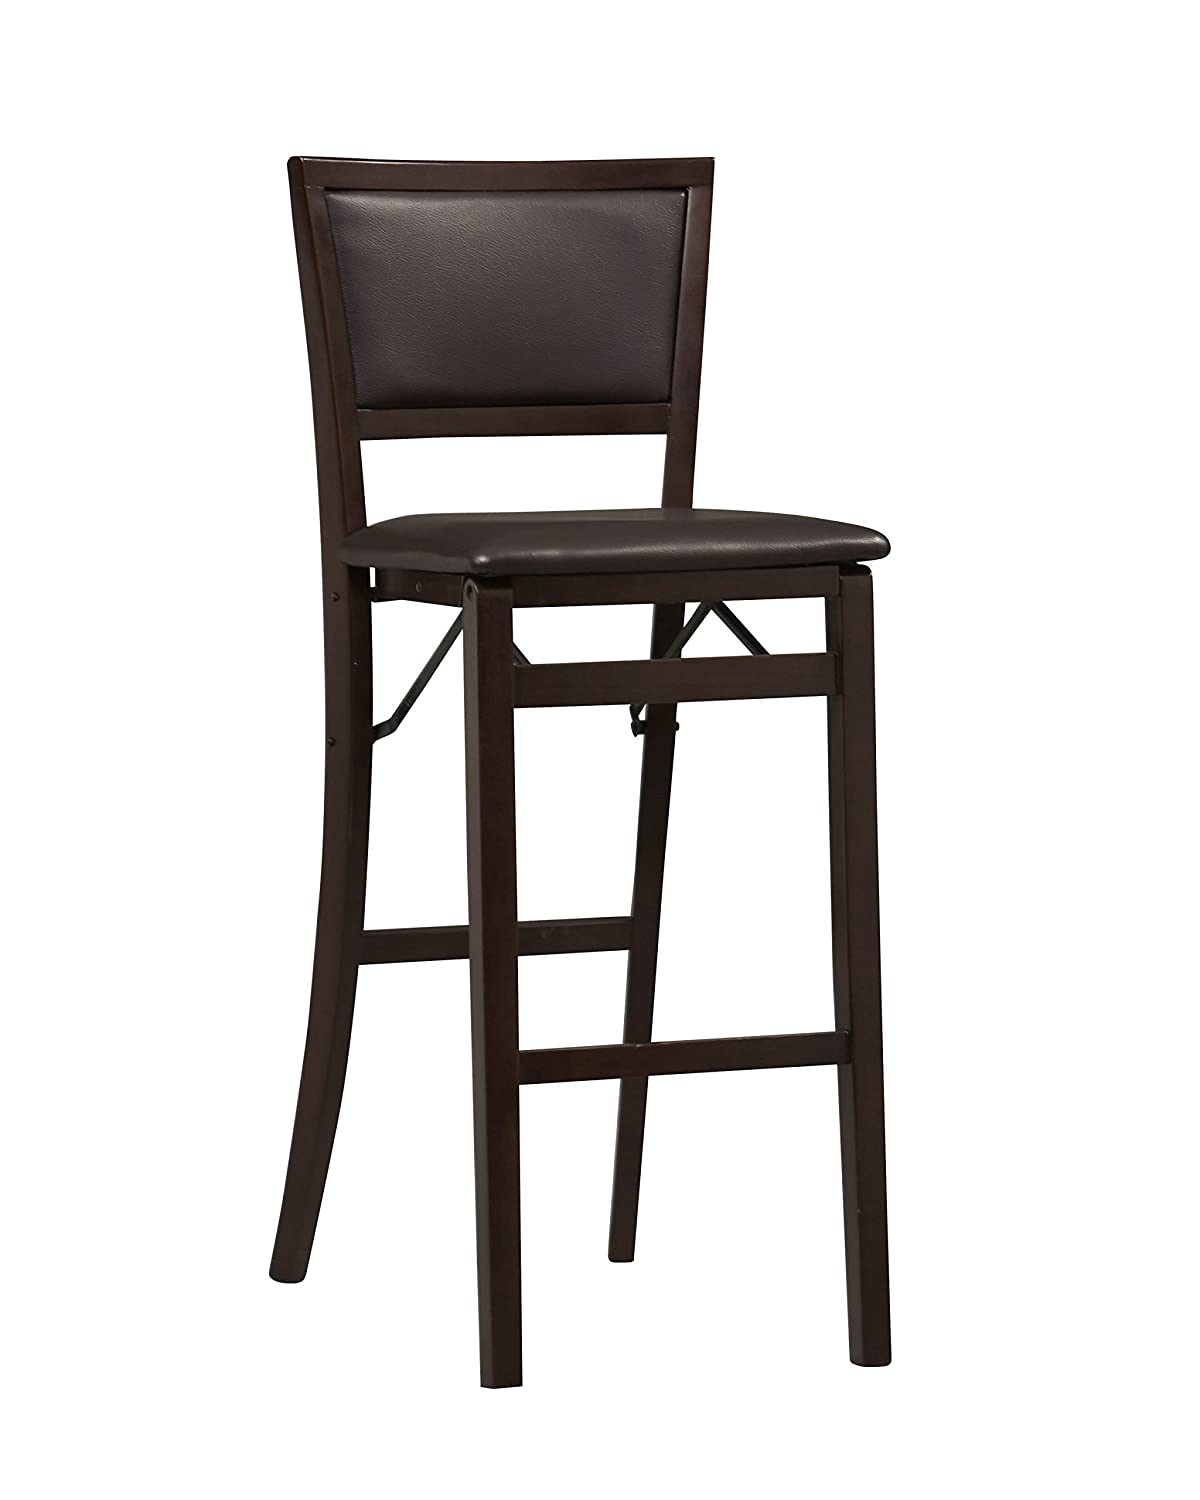 30 stools with back. 30 Stools With Back